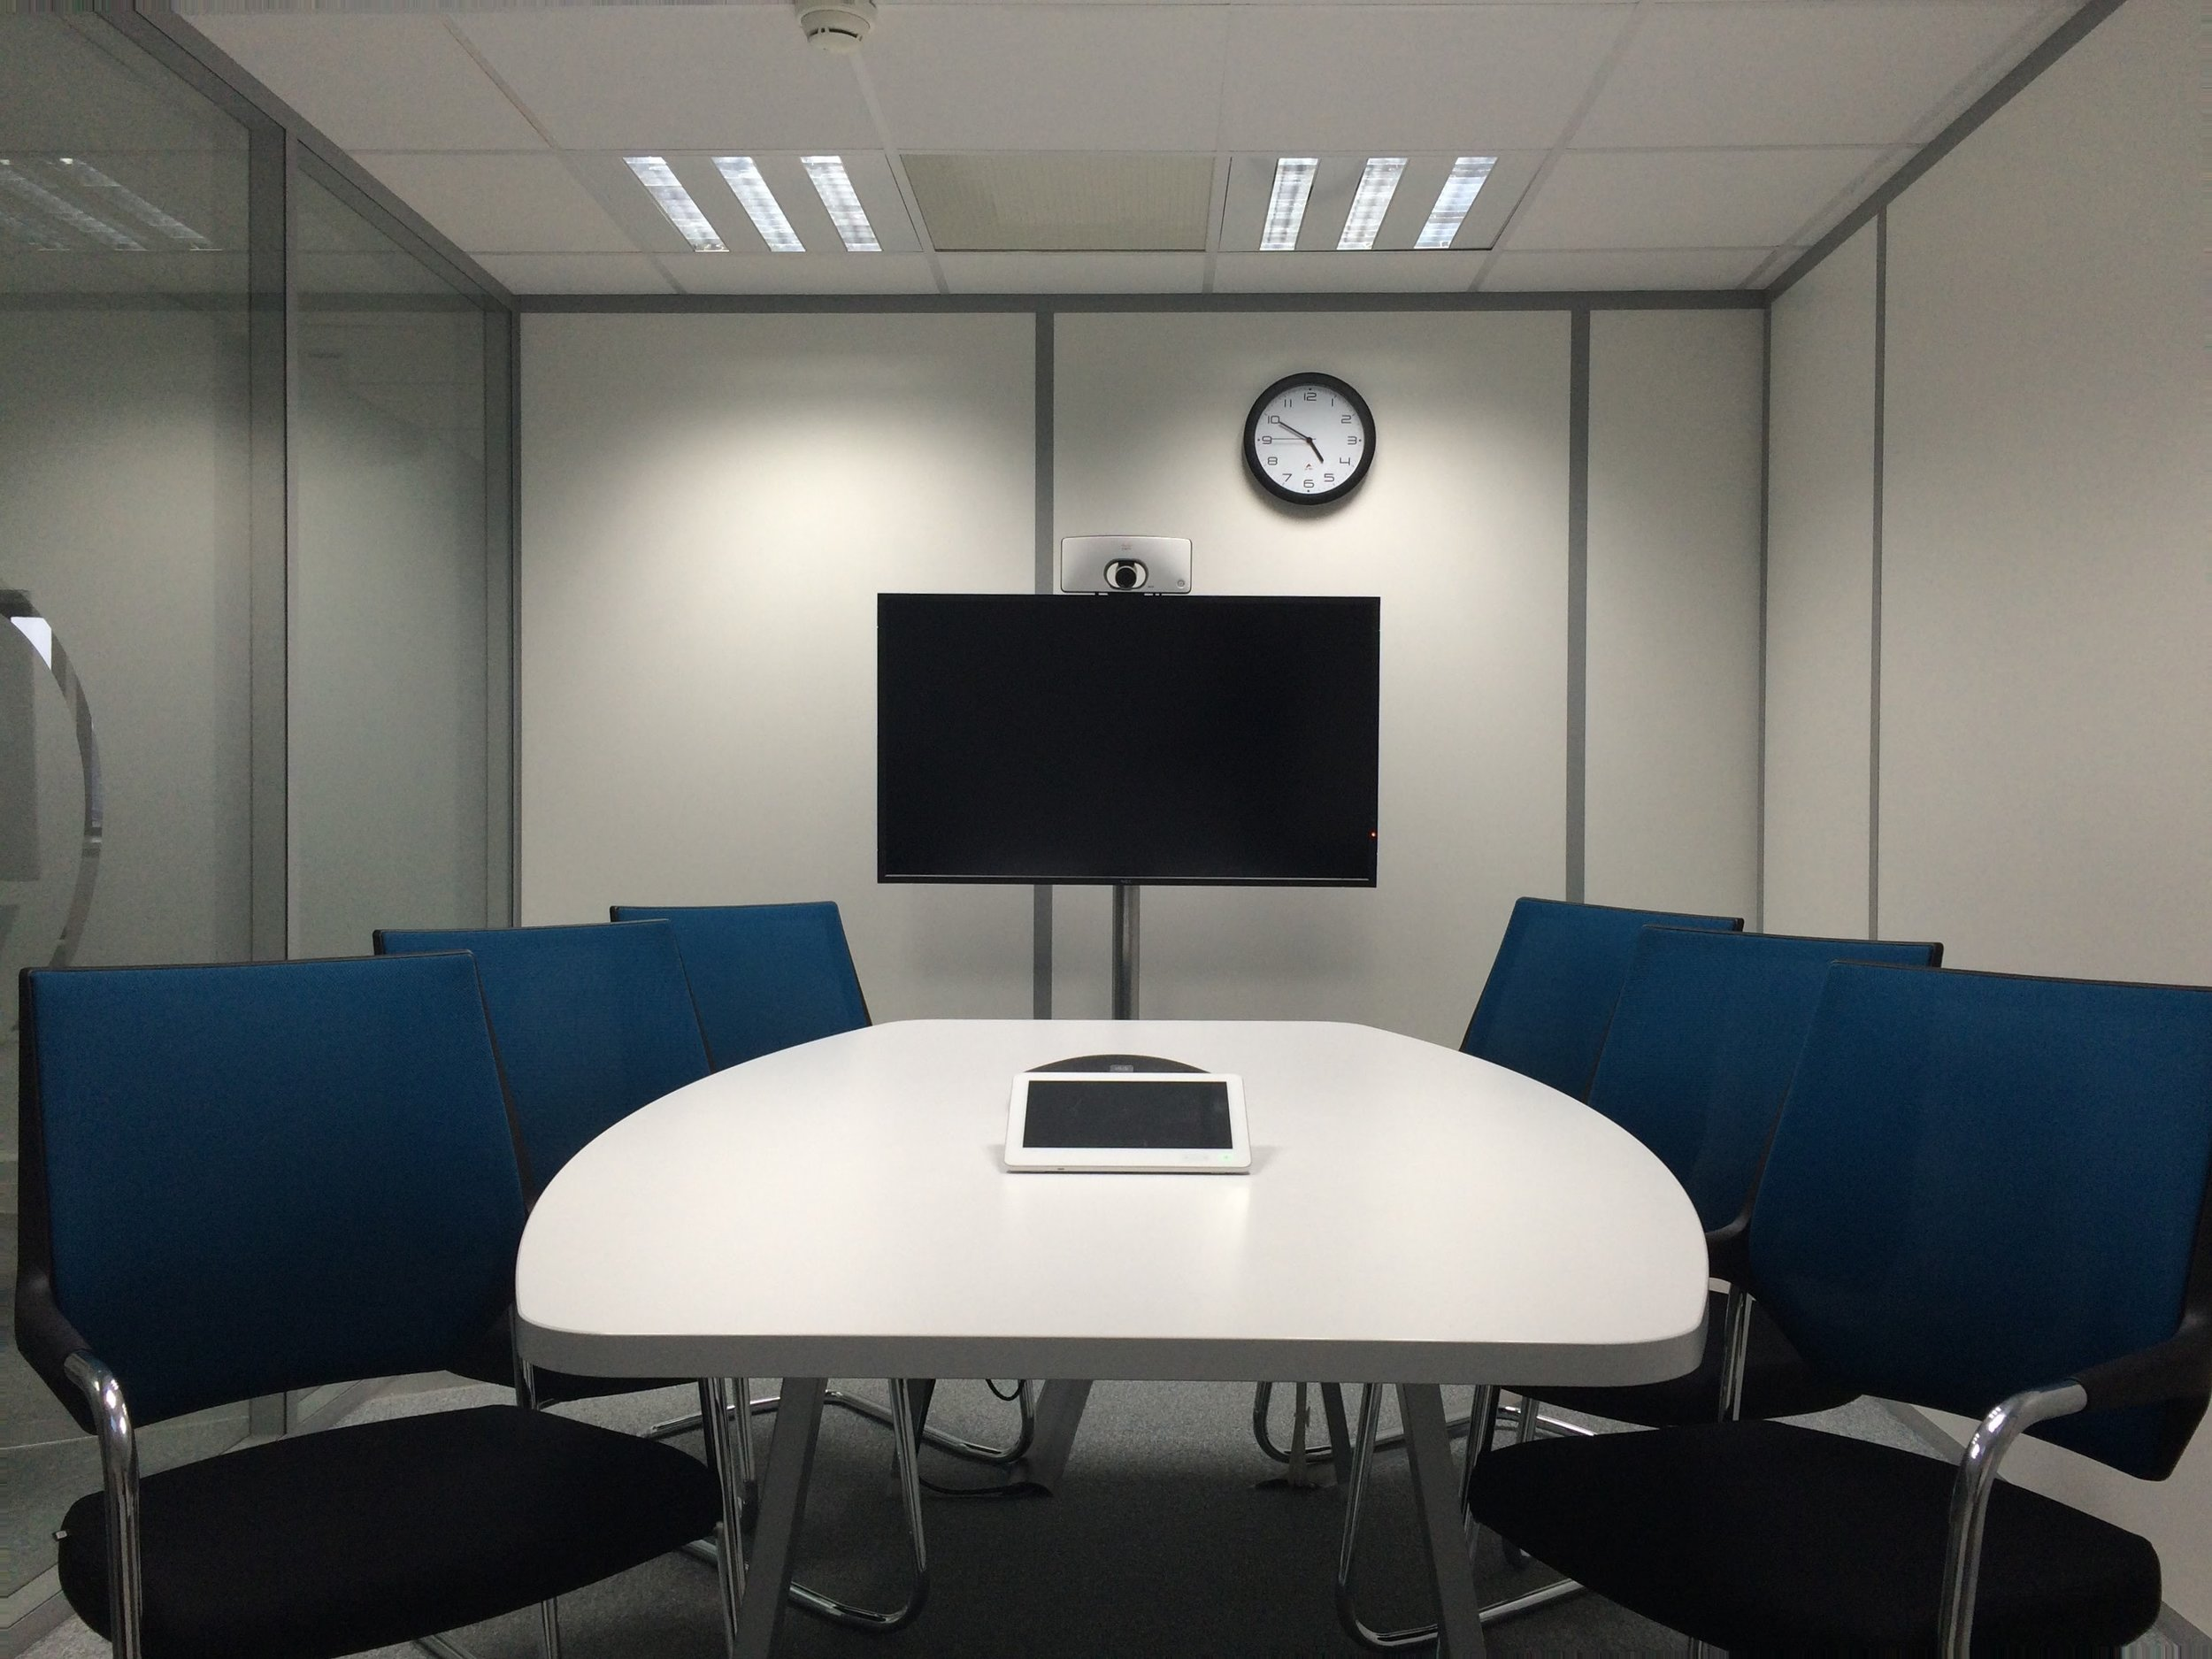 chairs-conference-room-corporate-236730.jpg